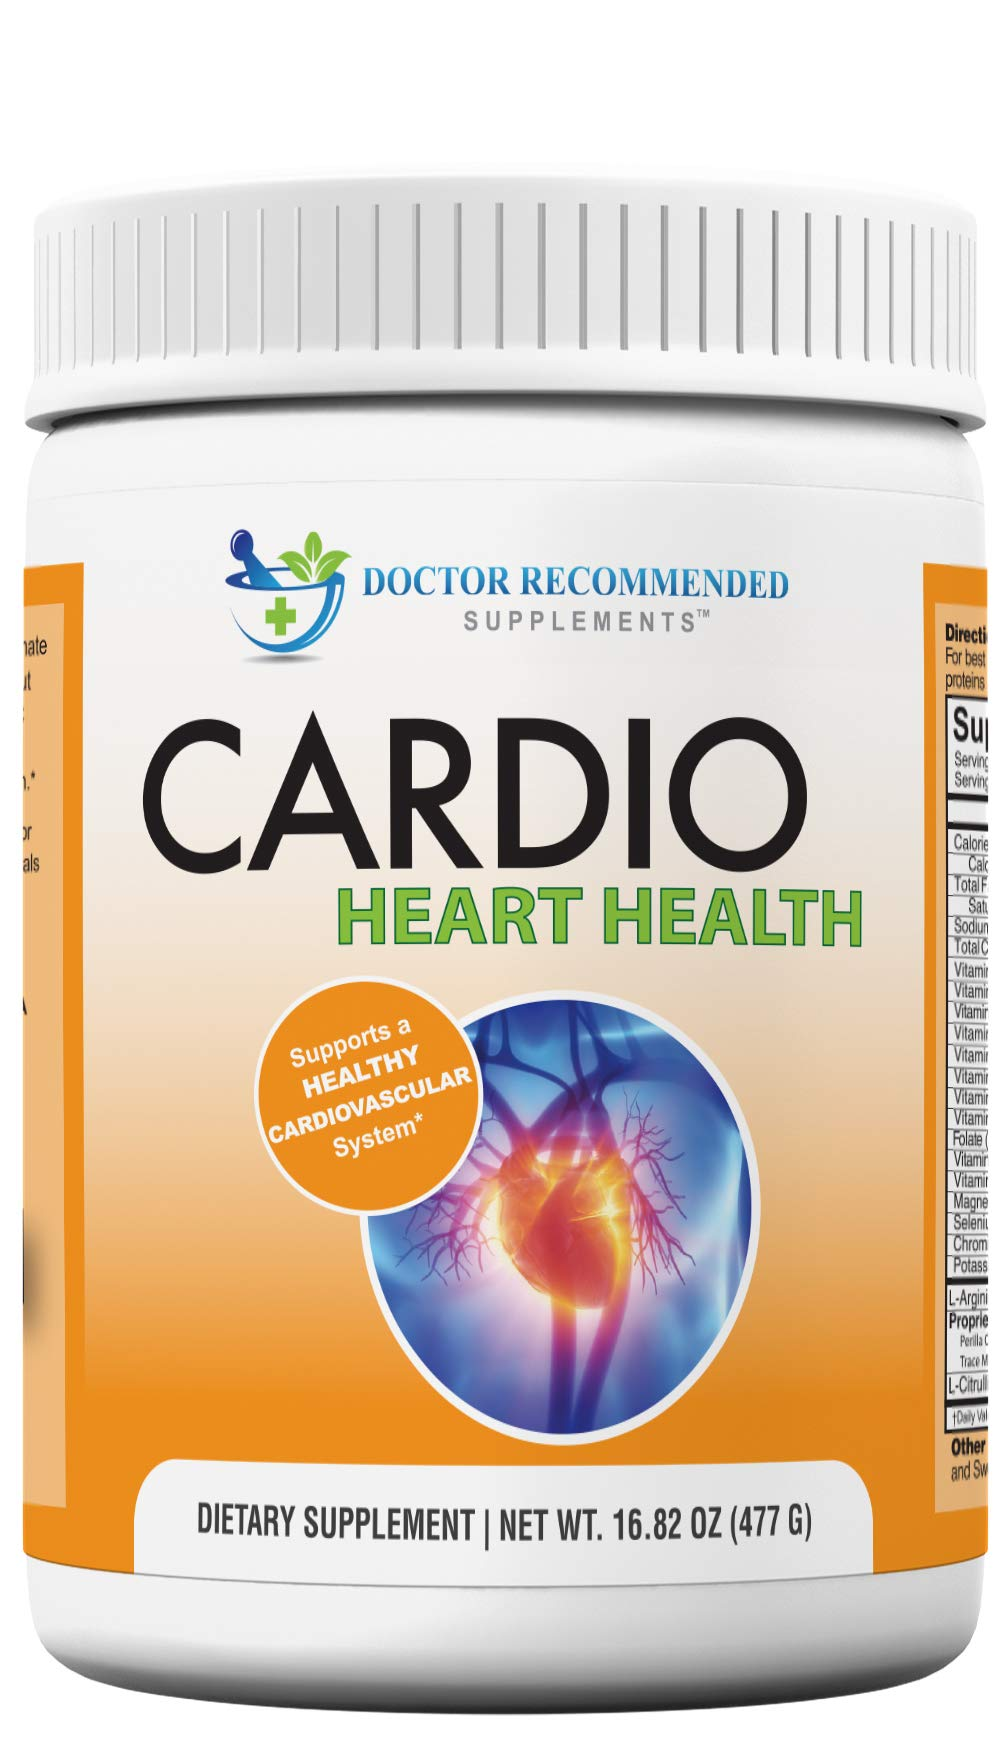 Cardio Heart Health Powder - L-Arginine Supplement 5000mg & L-Citrulline 1000mg,16.82 oz by DOCTOR RECOMMENDED SUPPLEMENTS